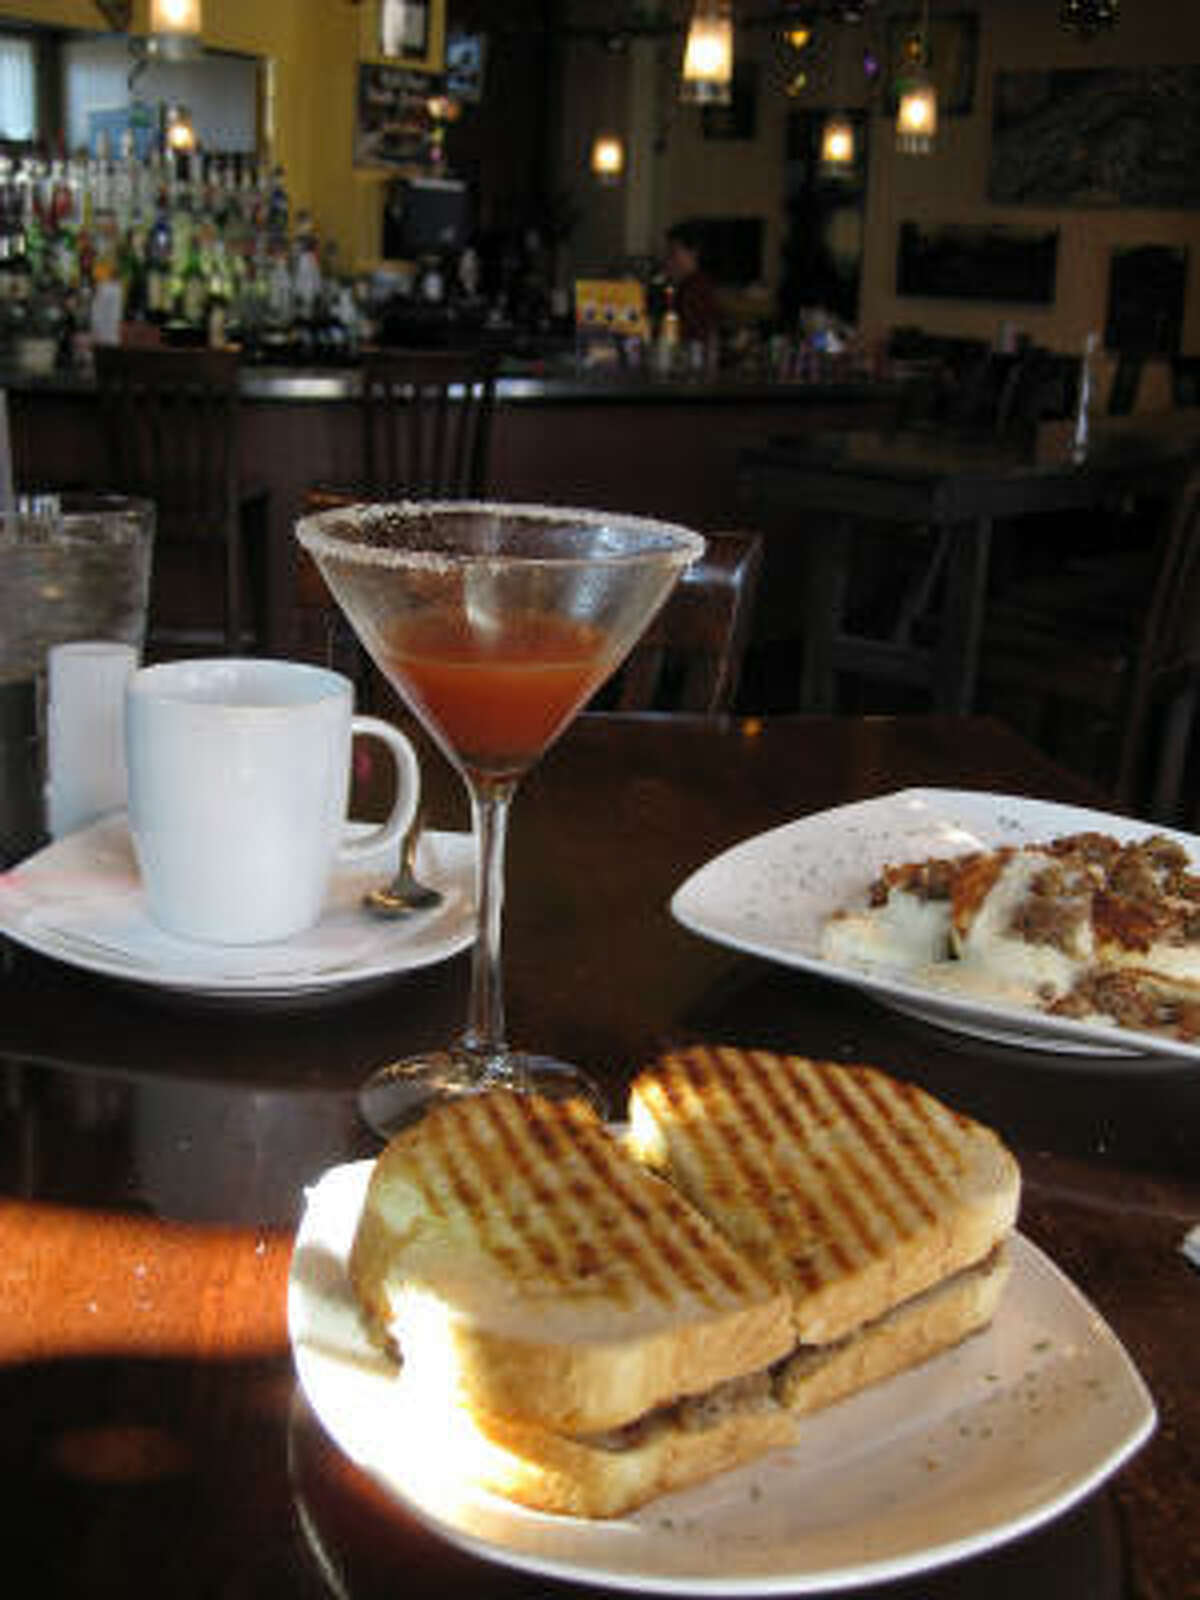 Van Goghz Martini Bar and Bistro offers breakfast paninis and Bloody Marys.